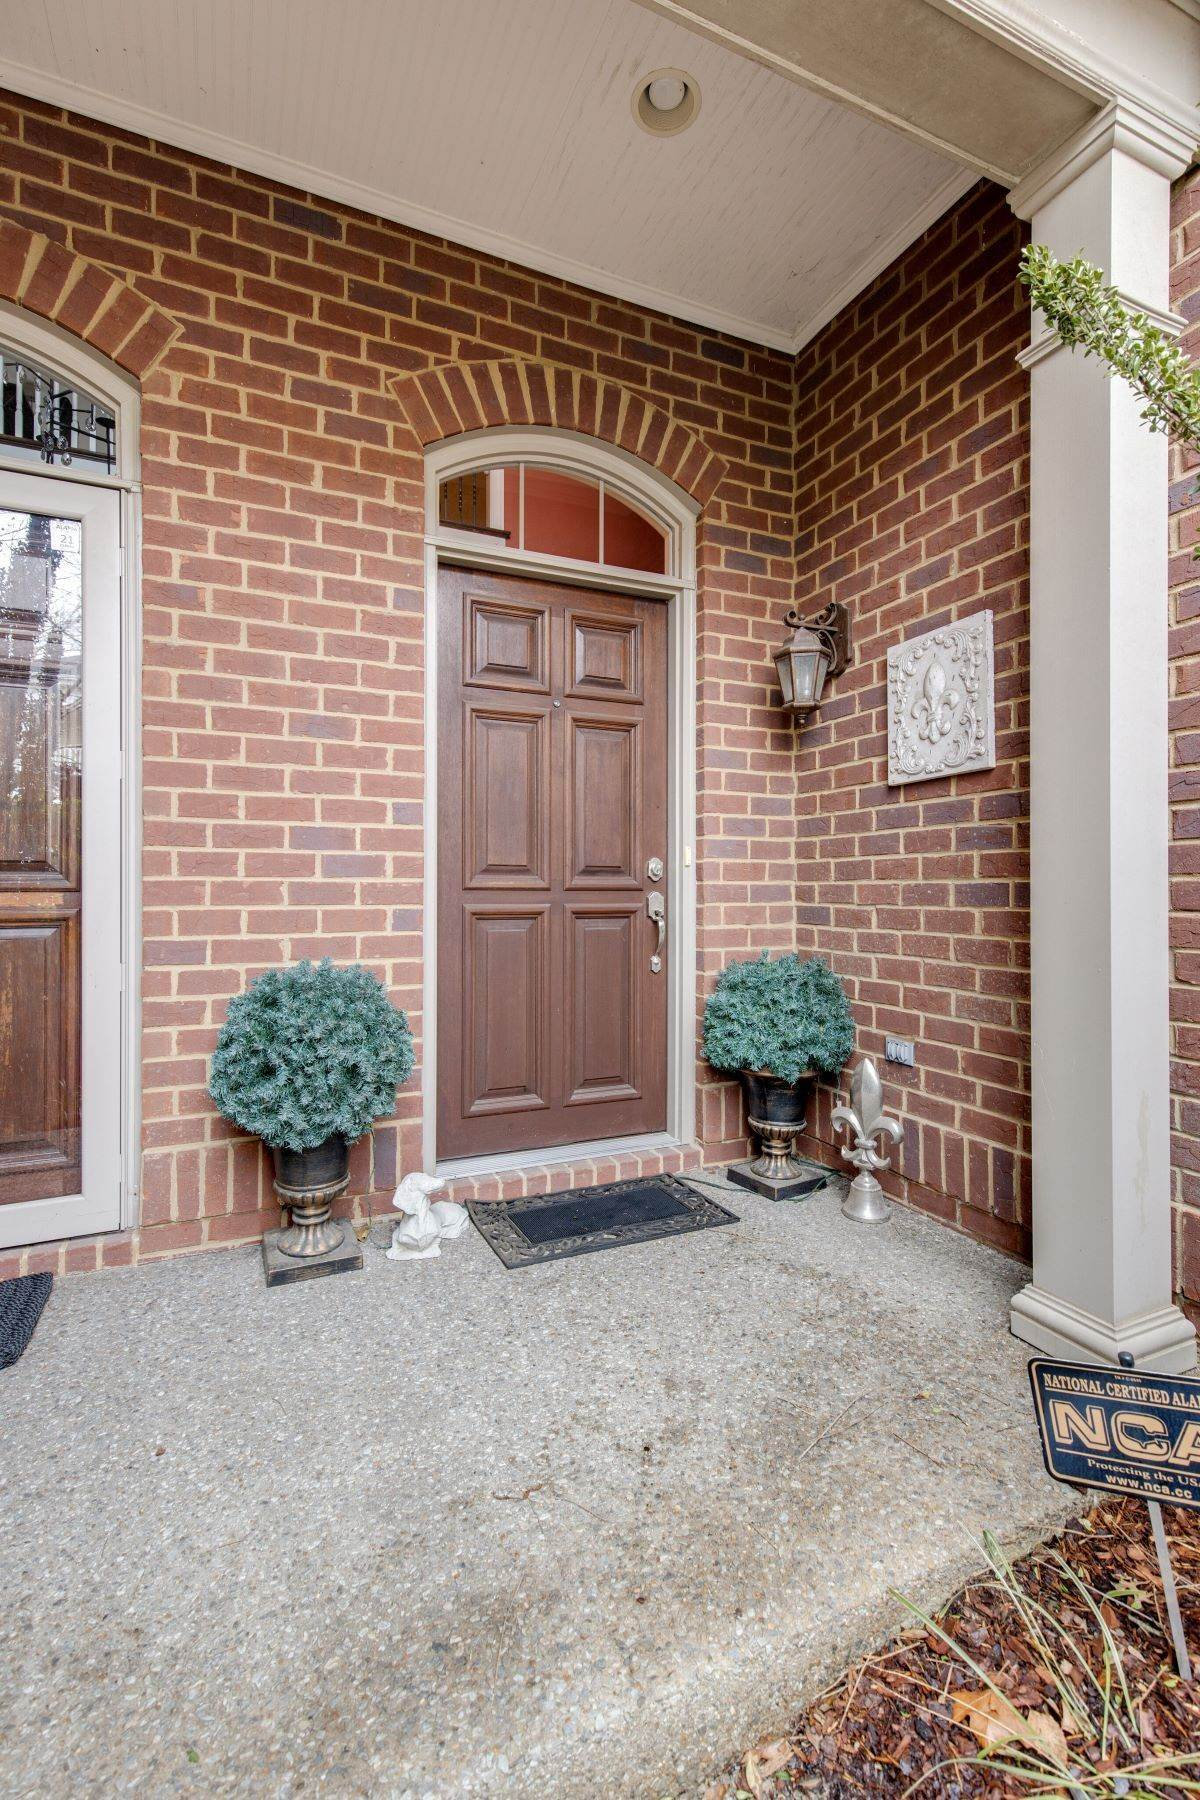 5. Single Family Homes for Sale at 4209 Stammer Place, Nashville, TN 37215 4209 Stammer Place Nashville, Tennessee 37215 United States